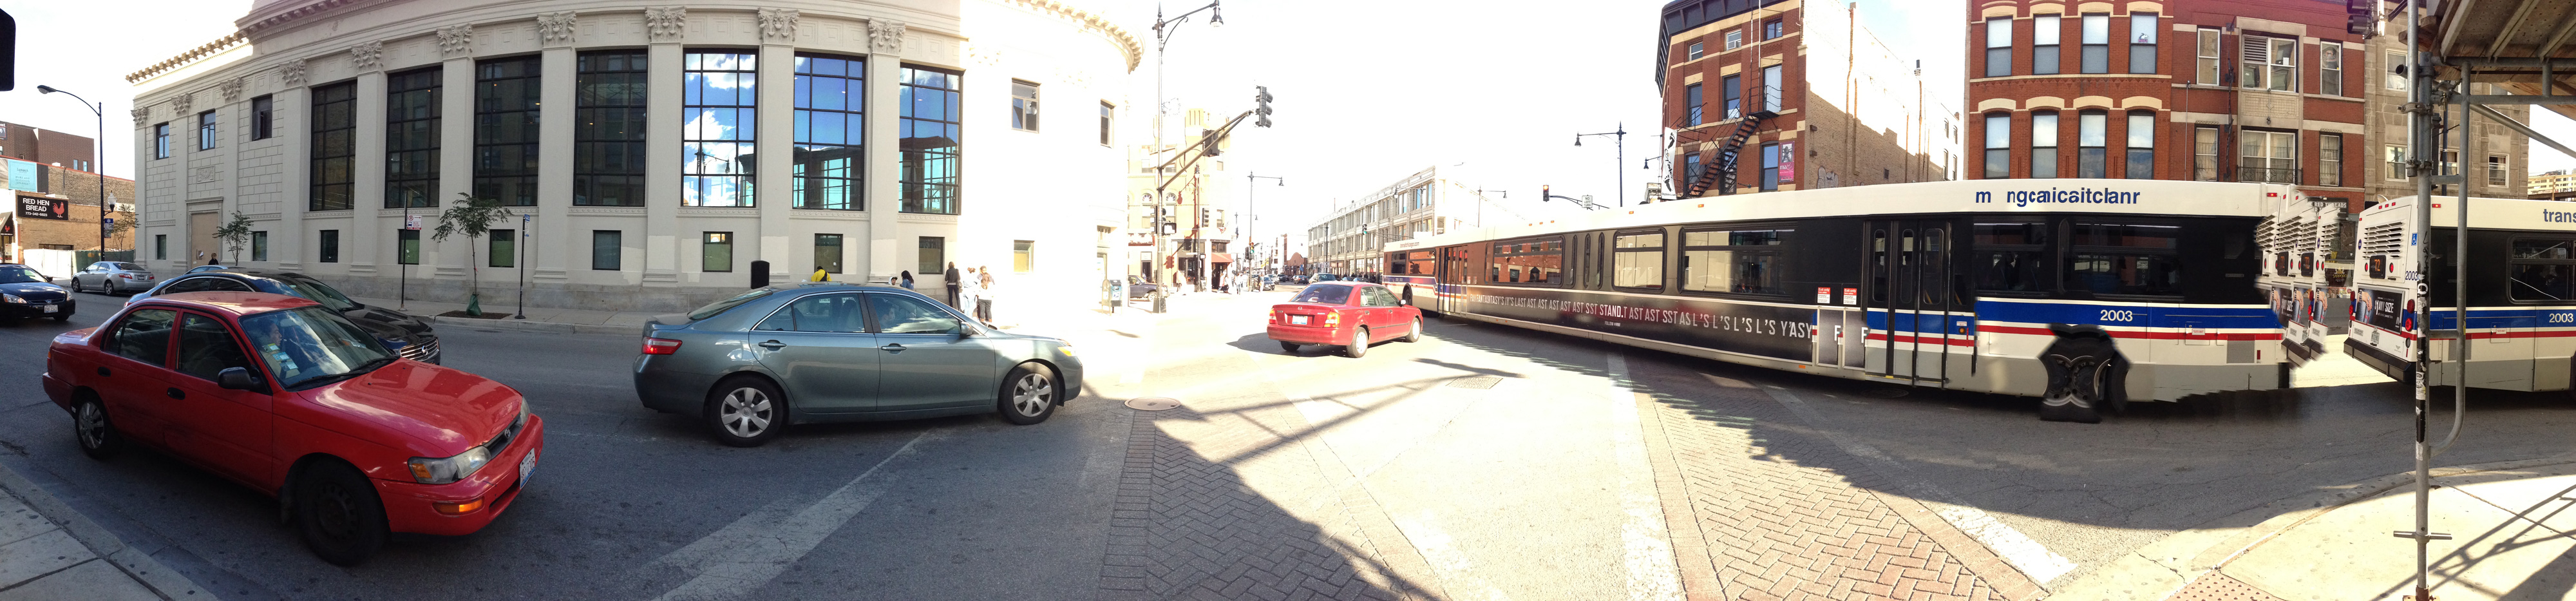 Sometimes moving objects, such as this CTA bus, can present a problem to the iPhone's panorama stitching algorithm.